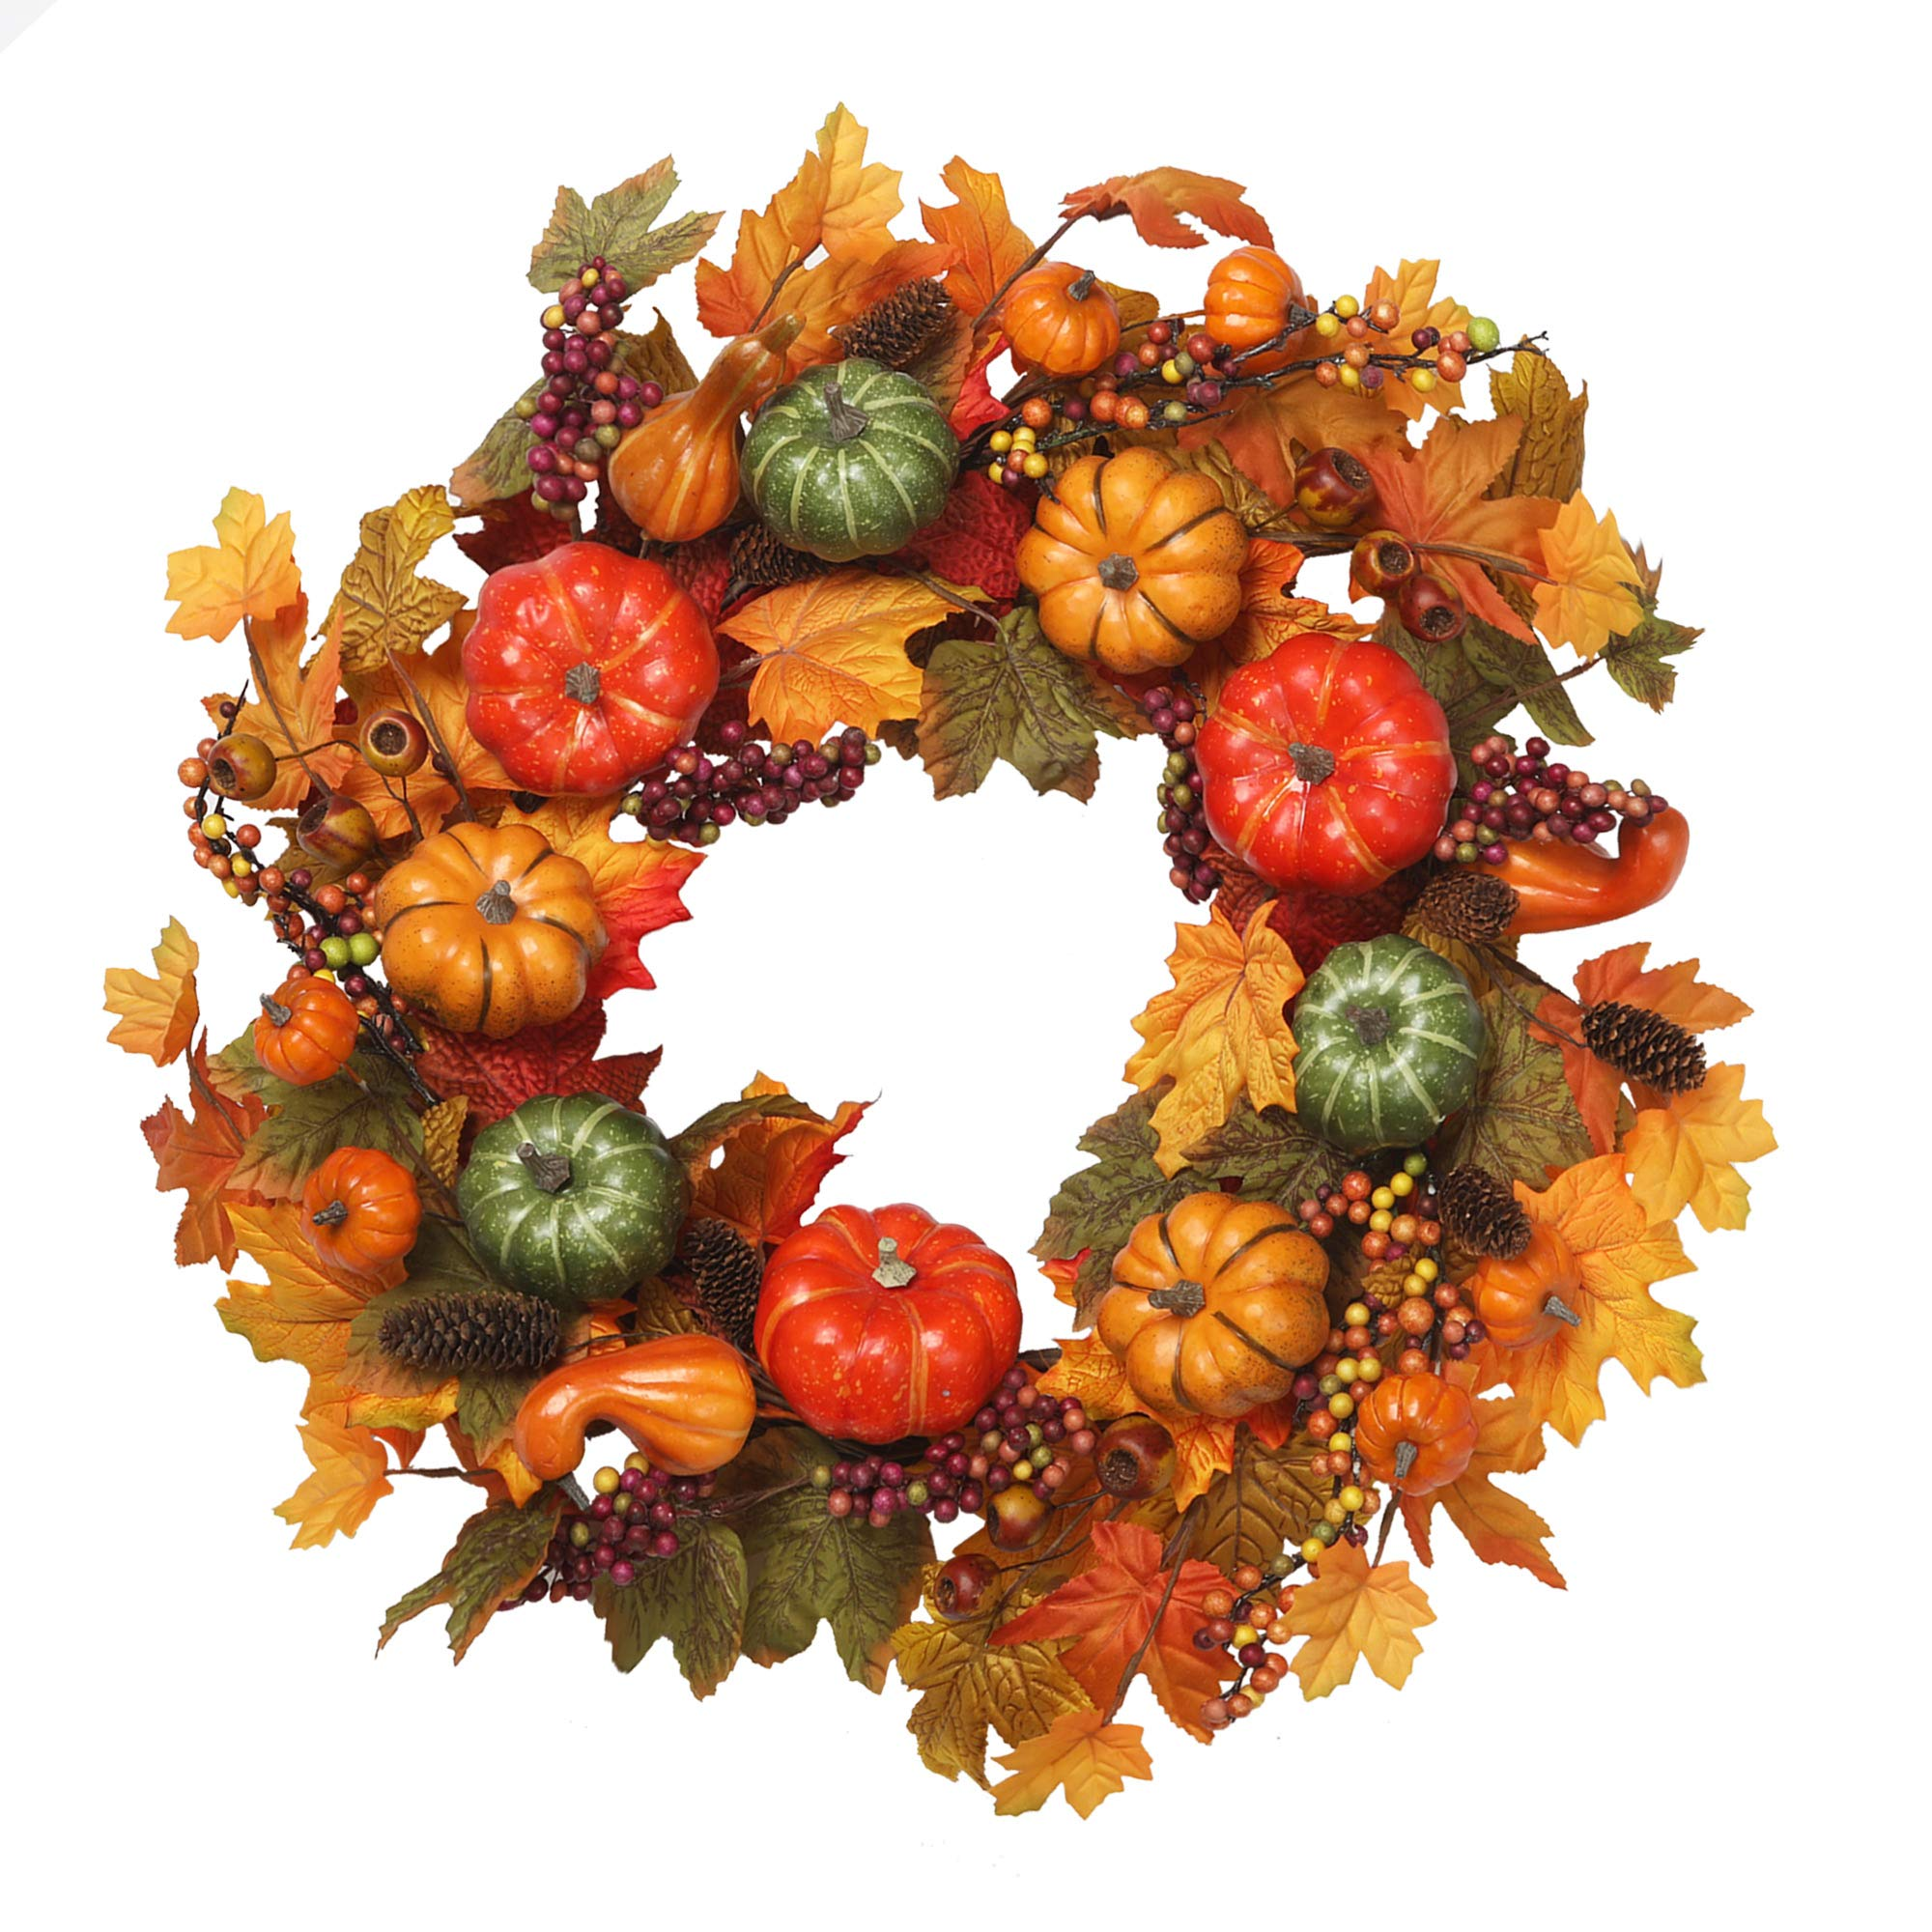 VGIA 22 inch Artificial Fall Wreath Fall Maple Leaves,Pumpkins with Berries for Front Door Fall Harvest Decorations by VGIA